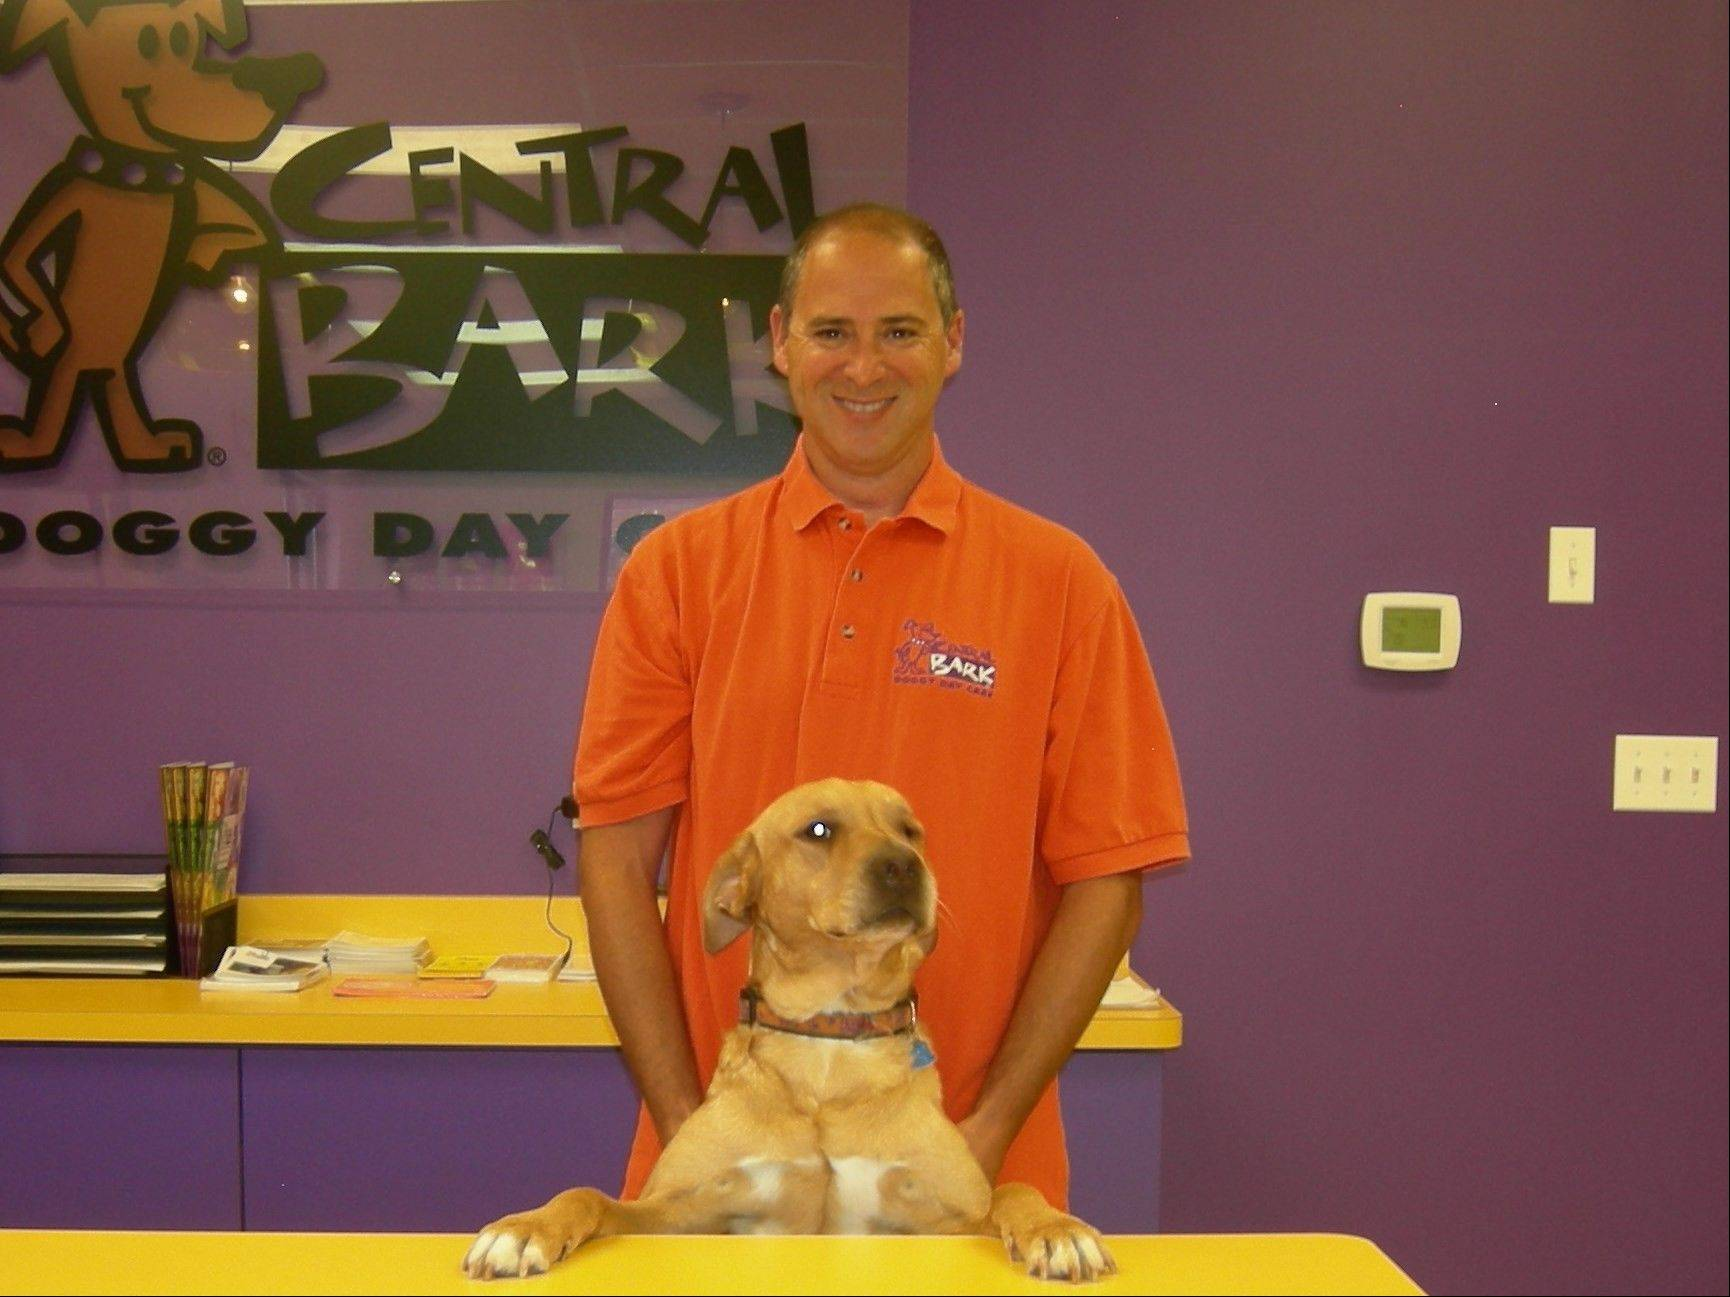 Central Bark Doggy Day Care offers services for dogs and their owners in Gurnee.